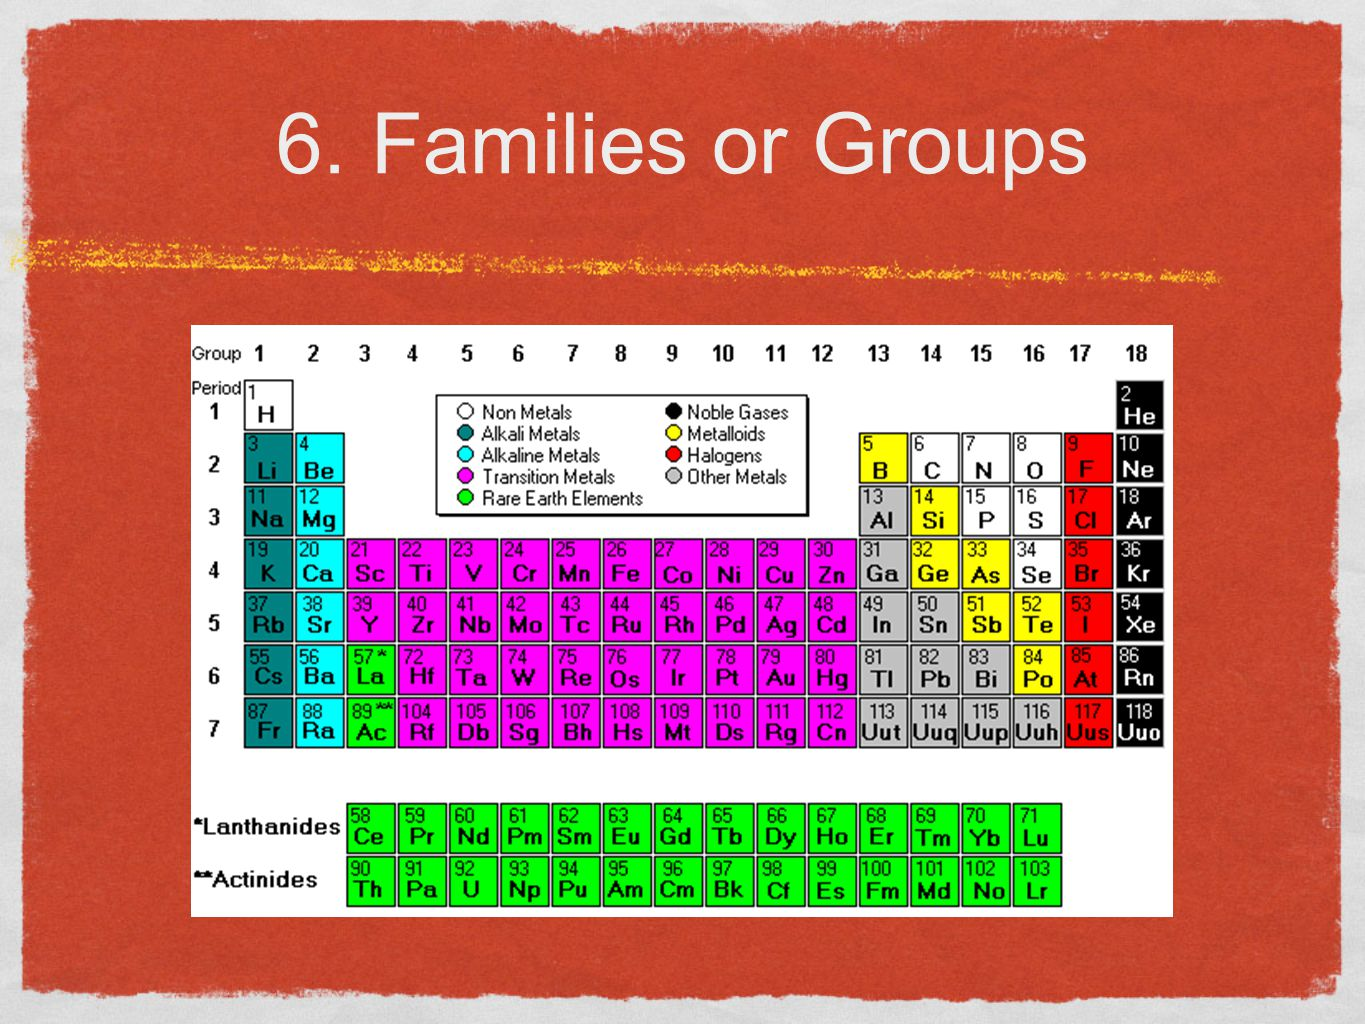 6. Families or Groups